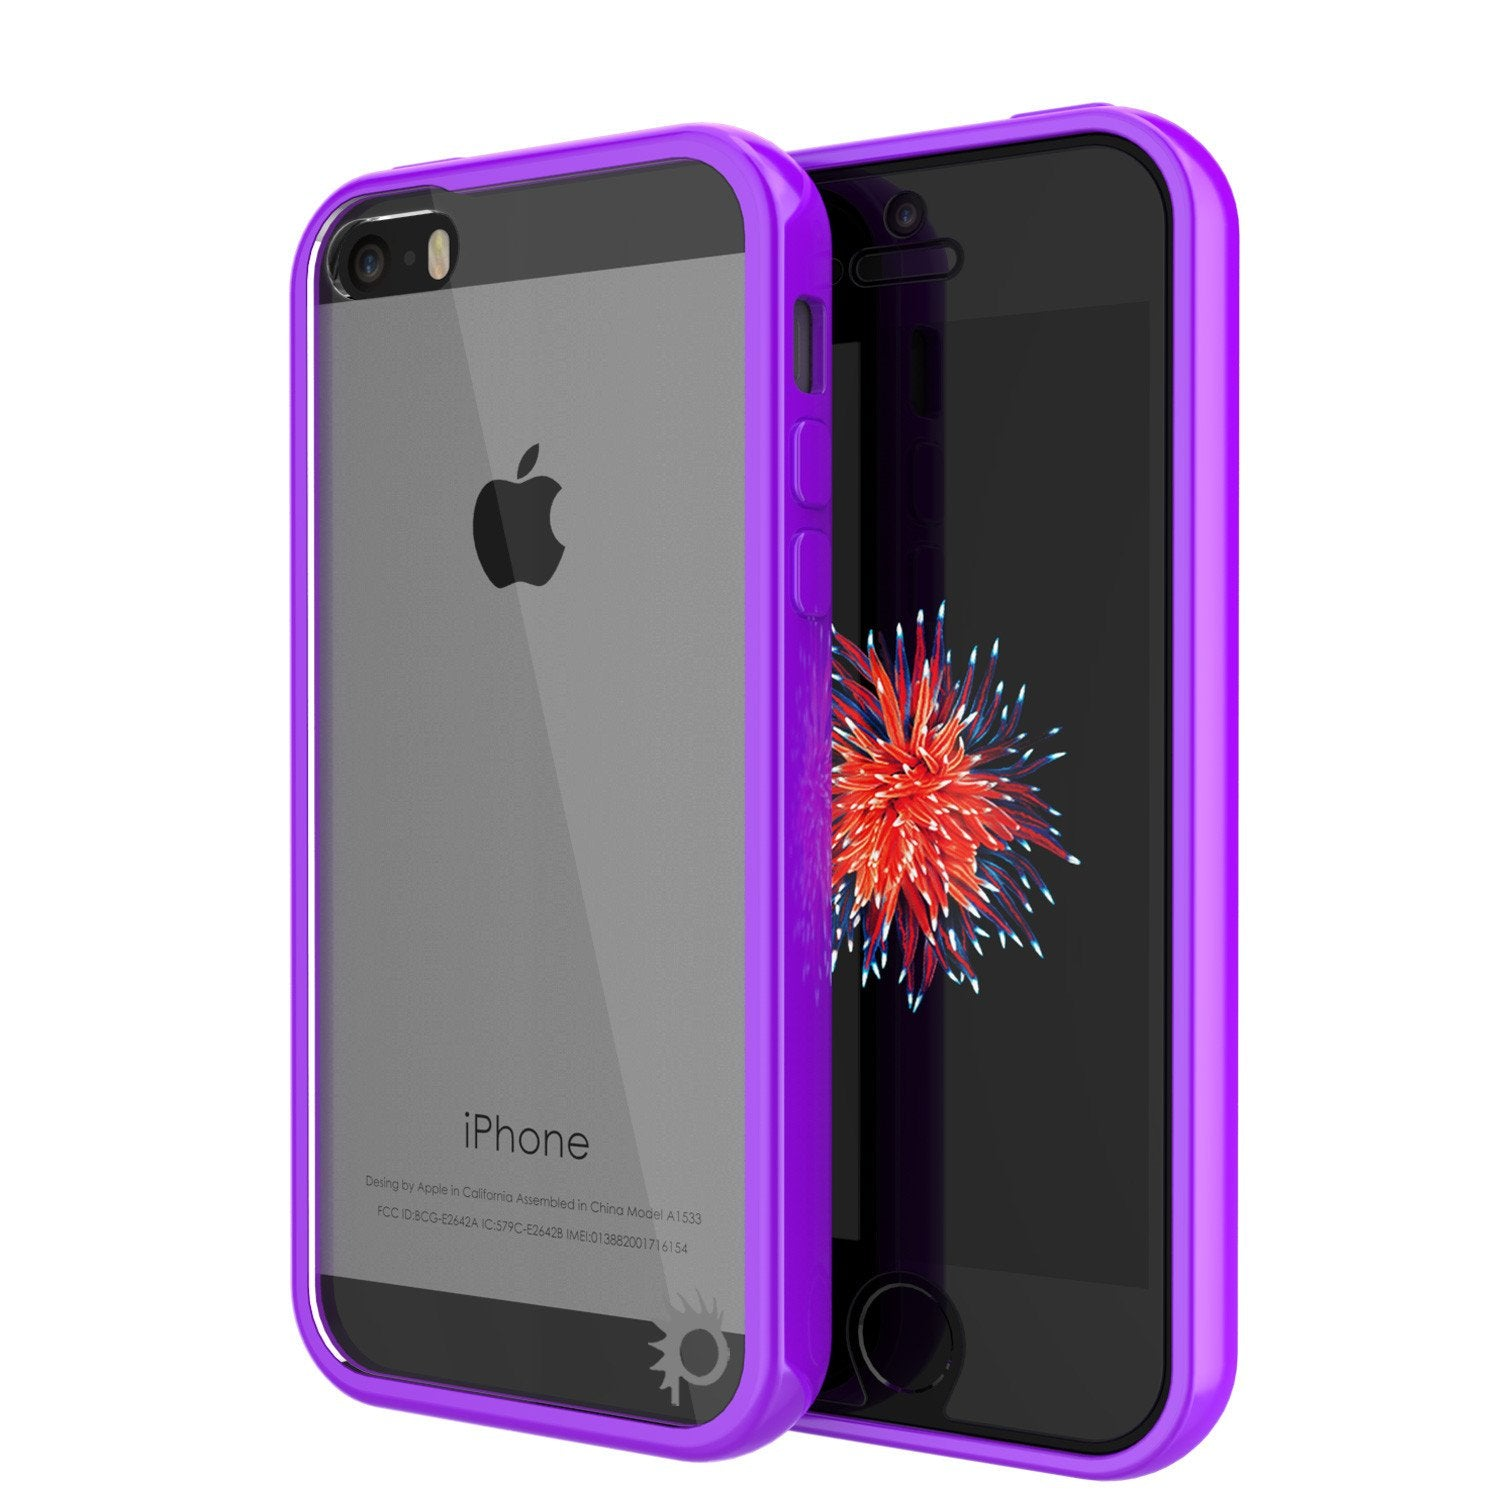 iPhone SE/5S/5 Case Punkcase® LUCID 2.0 Purple Series w/ PUNK SHIELD Screen Protector | Ultra Fit